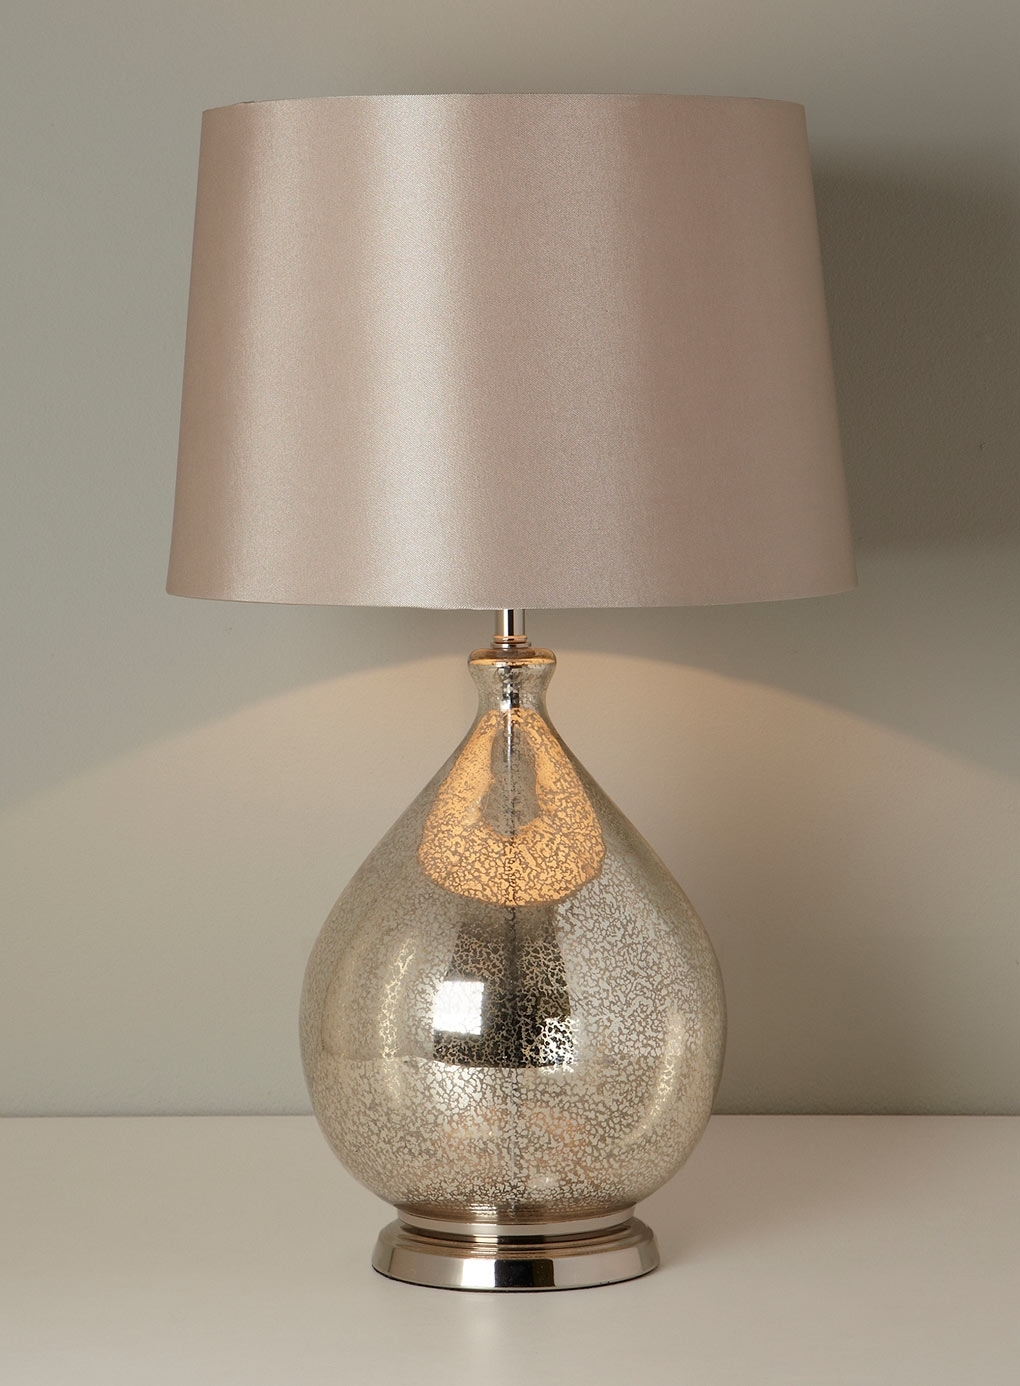 Glass Table Lamps For Living Room — Table Design : Dazzling Glass Pertaining To Glass Living Room Table Lamps (#11 of 15)